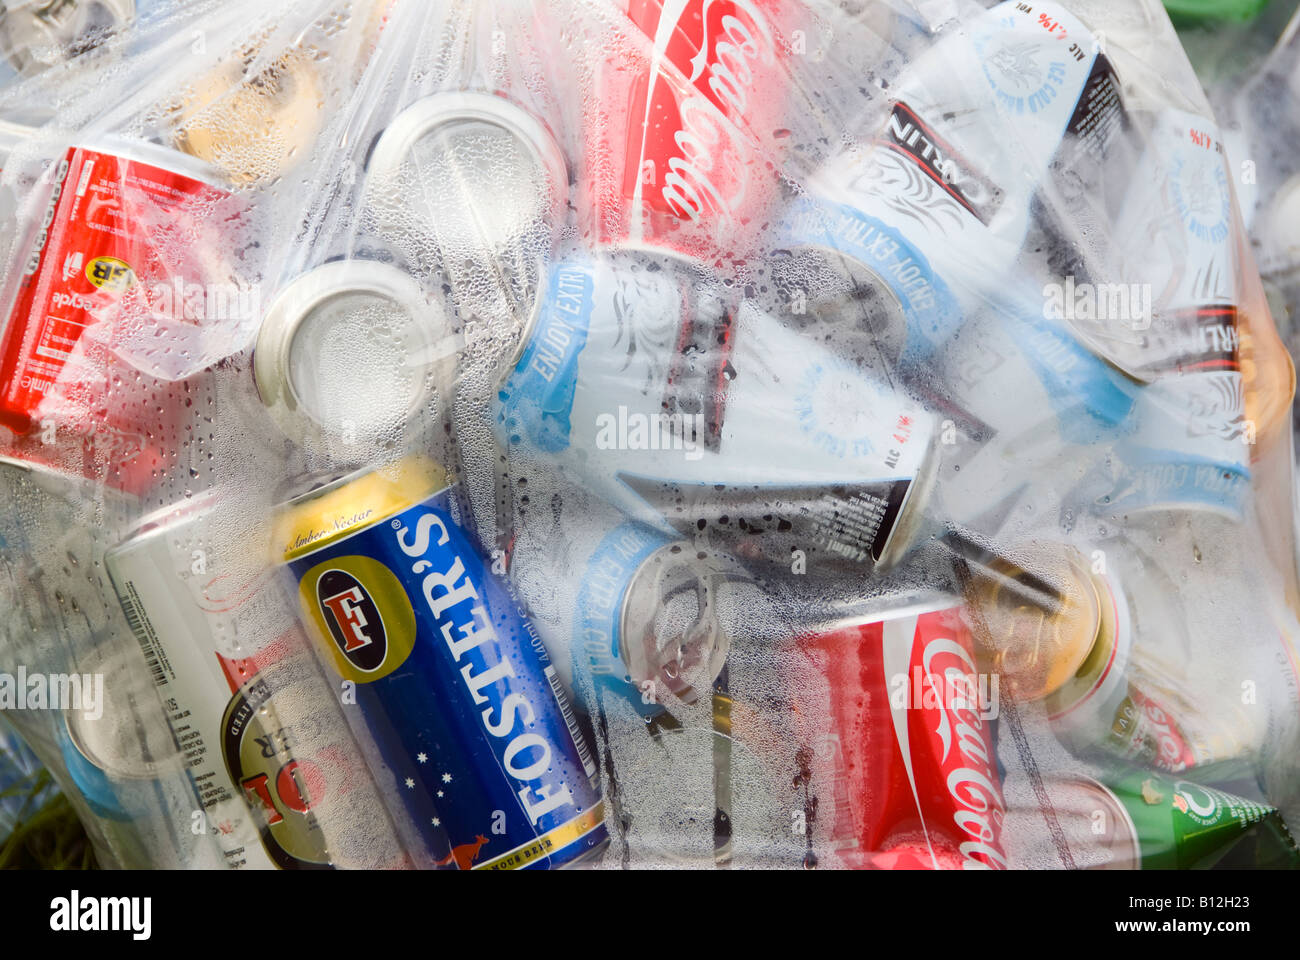 Drinks cans for recycling - Stock Image